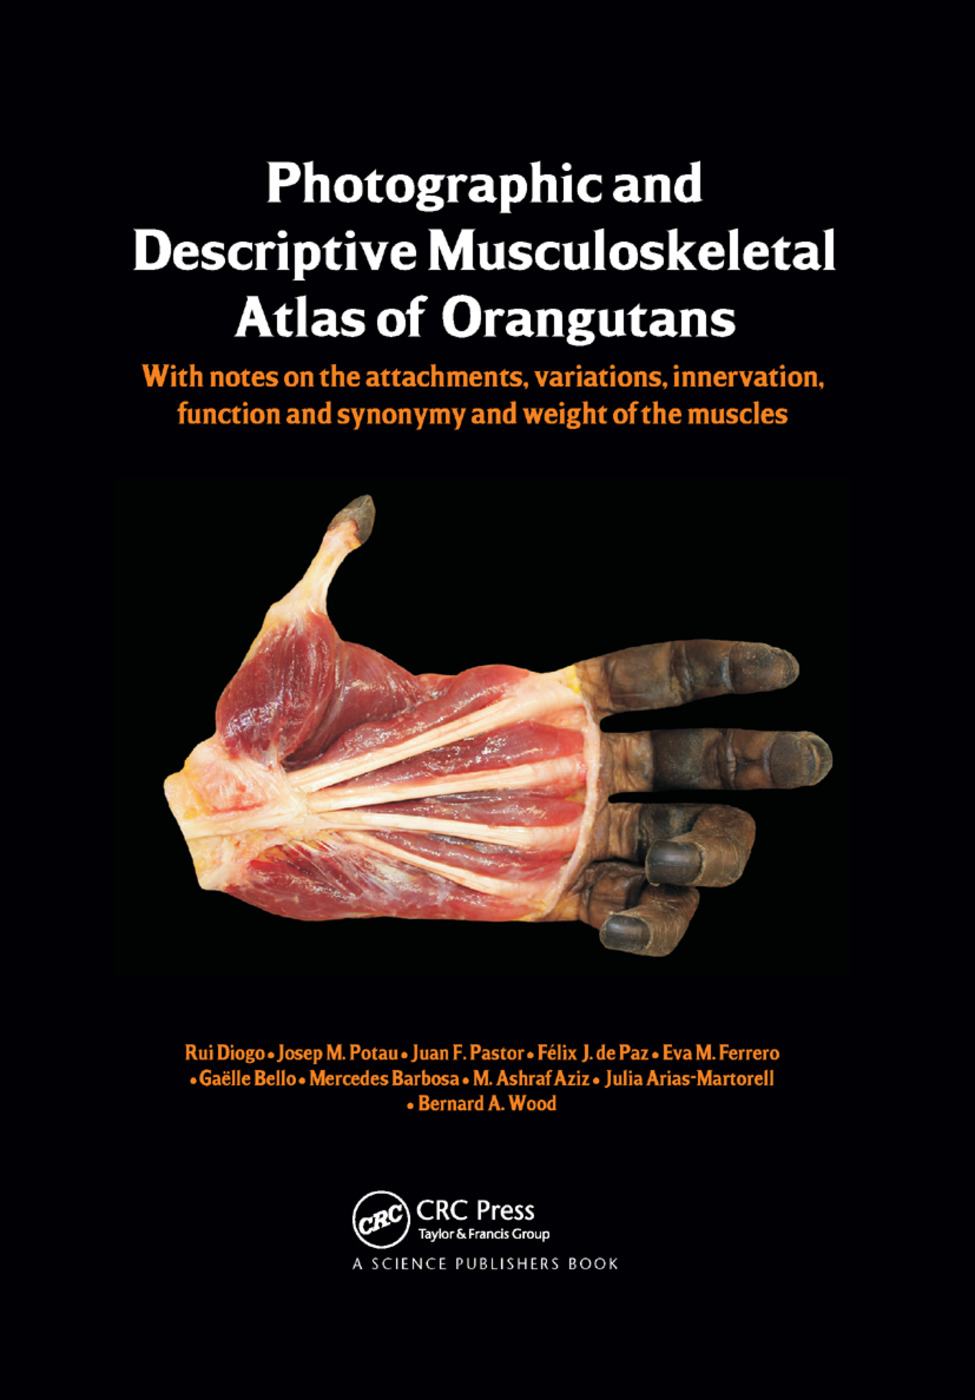 Photographic and Descriptive Musculoskeletal Atlas of Orangutans: with notes on the attachments, variations, innervations, function and synonymy and weight of the muscles, 1st Edition (Paperback) book cover